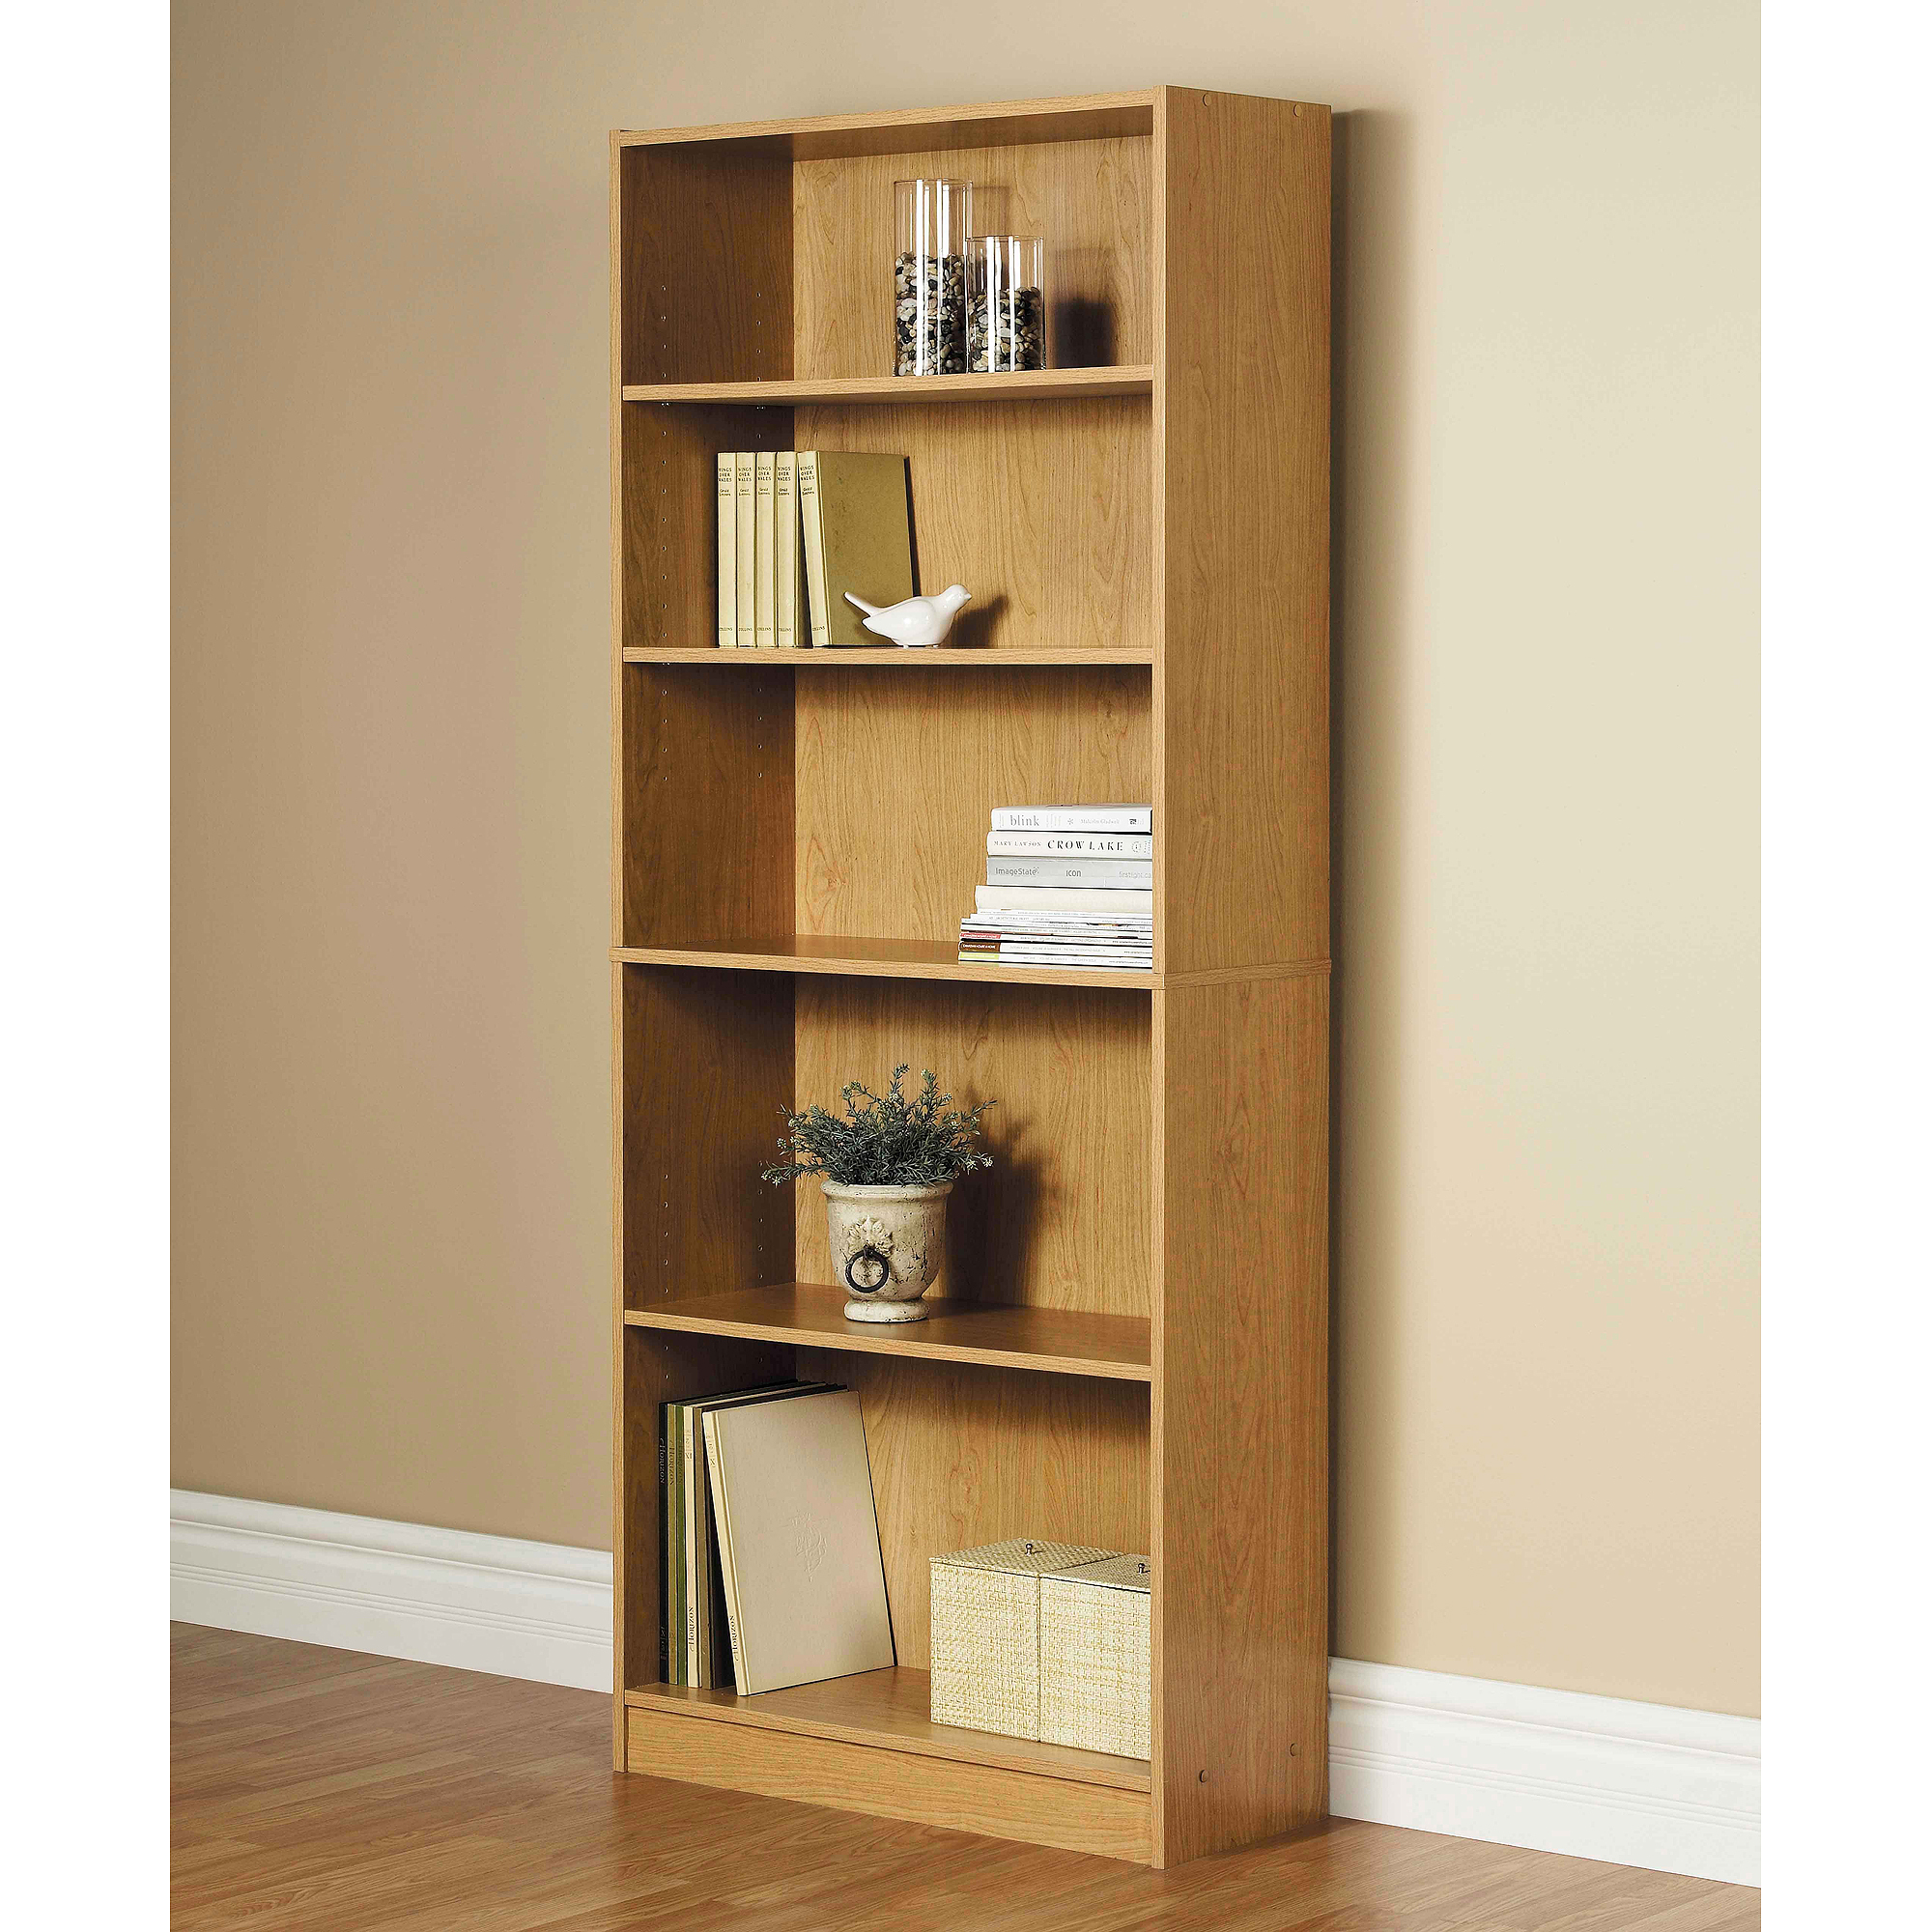 Mainstays Home Shelf Bookcase Multiple Finishes Walmartcom - Bookshelves walmart